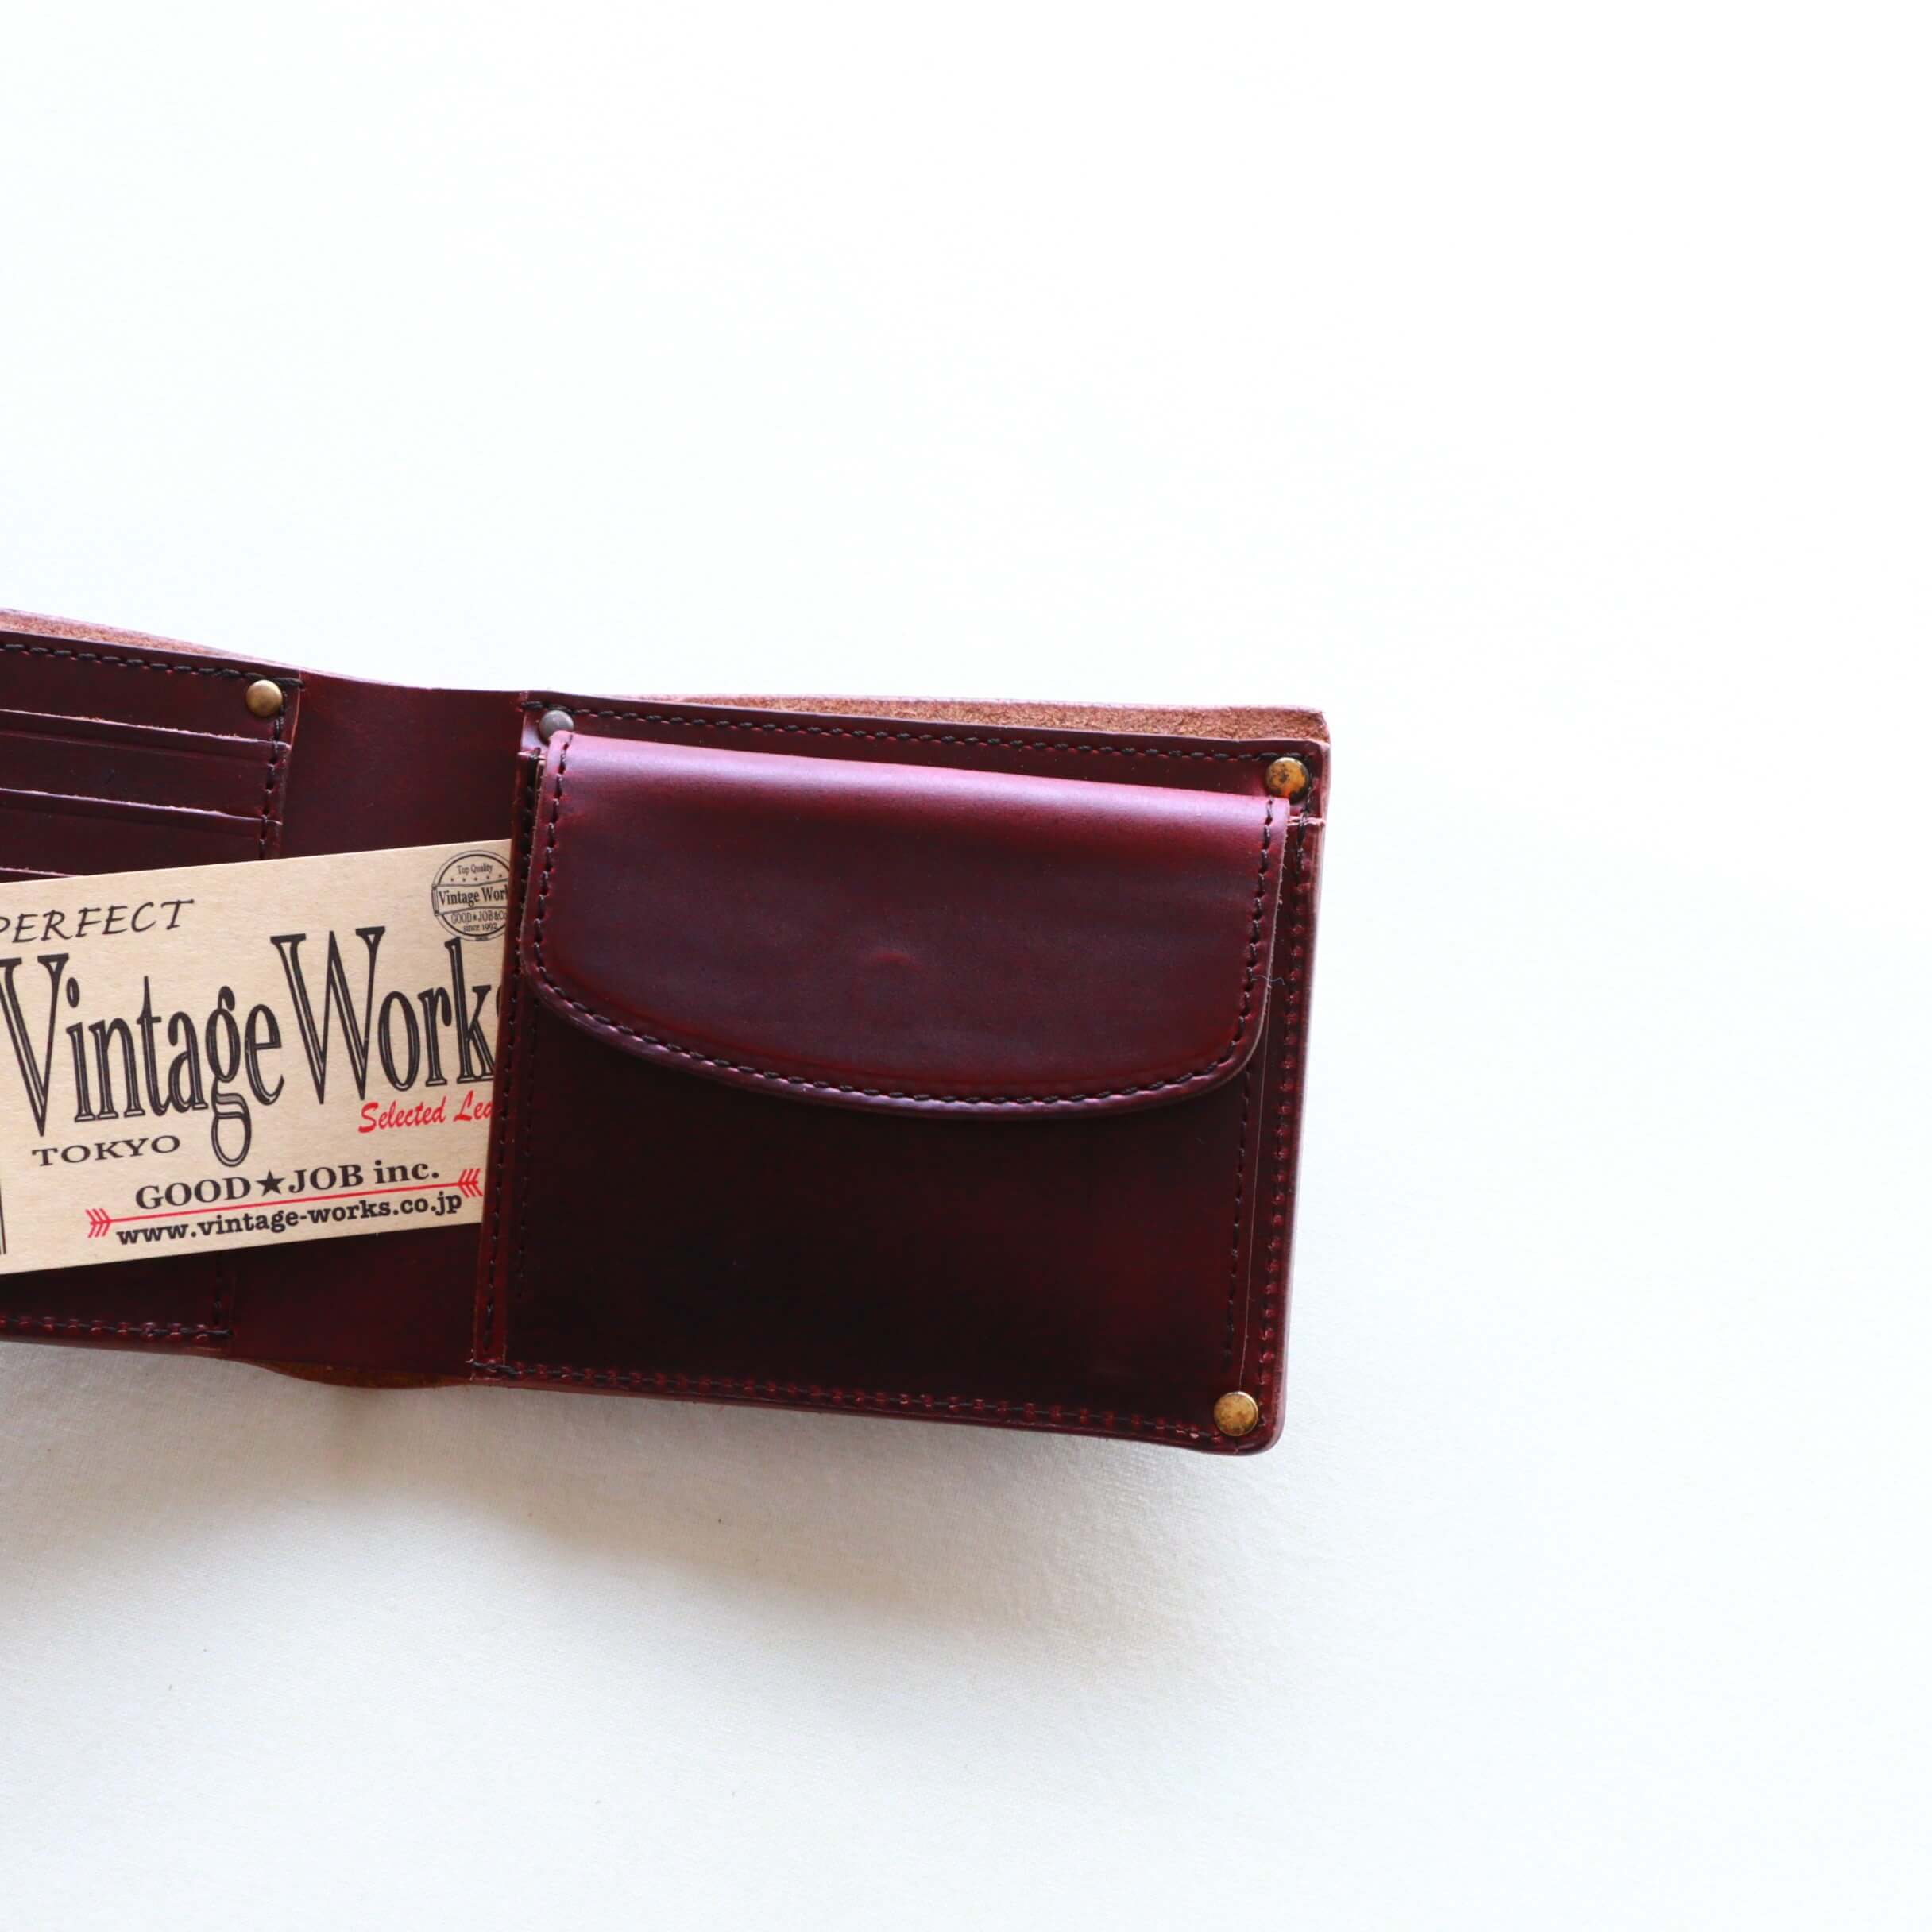 Vintage Works ヴィンテージワークス Leather Wallet クロムエクセルウォレット VWSW-03